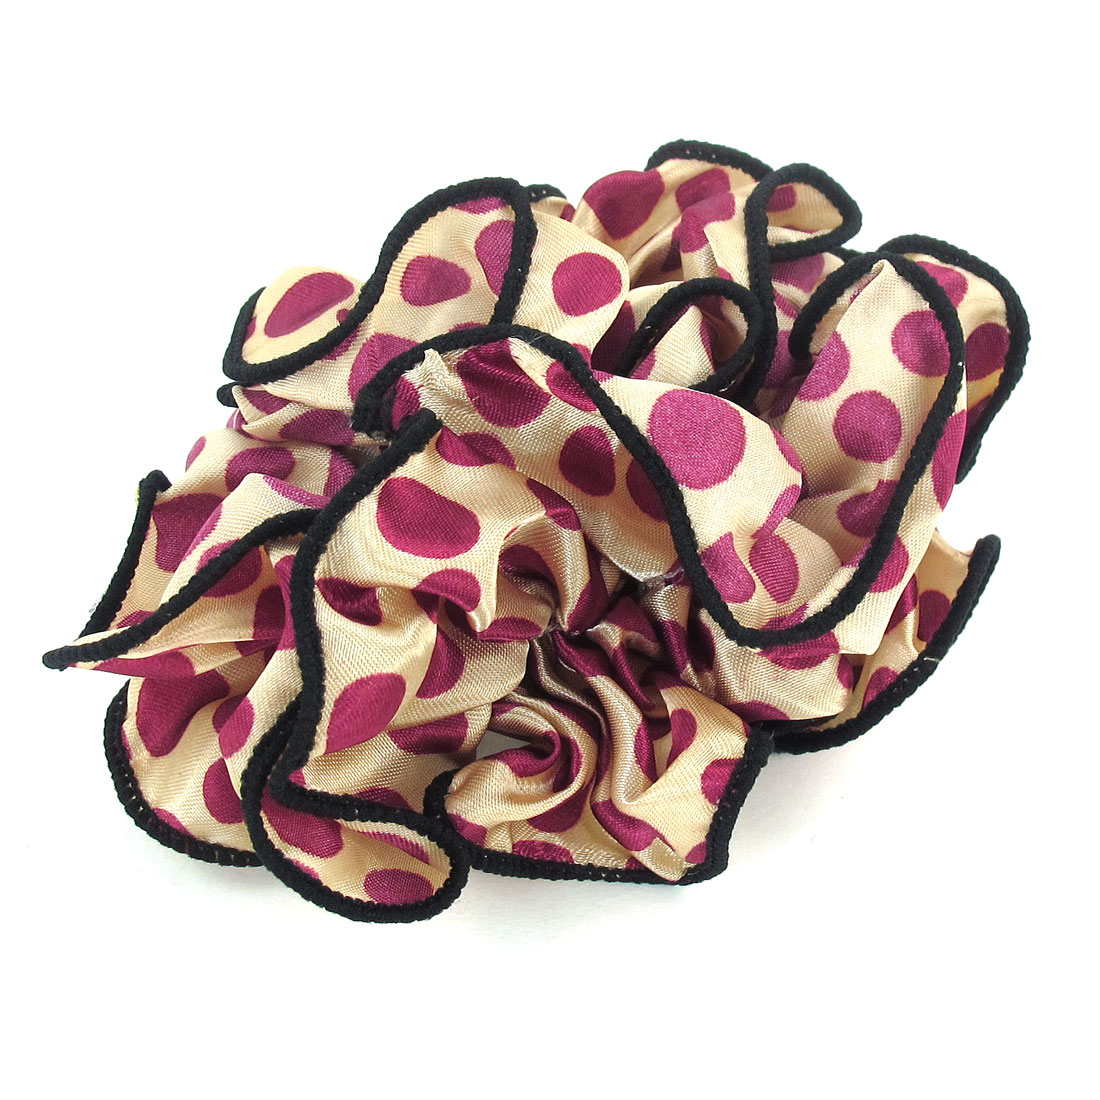 Women Burgundy Dots Printed Beige Chiffon Stretchy Ponytail Holder Hair Band